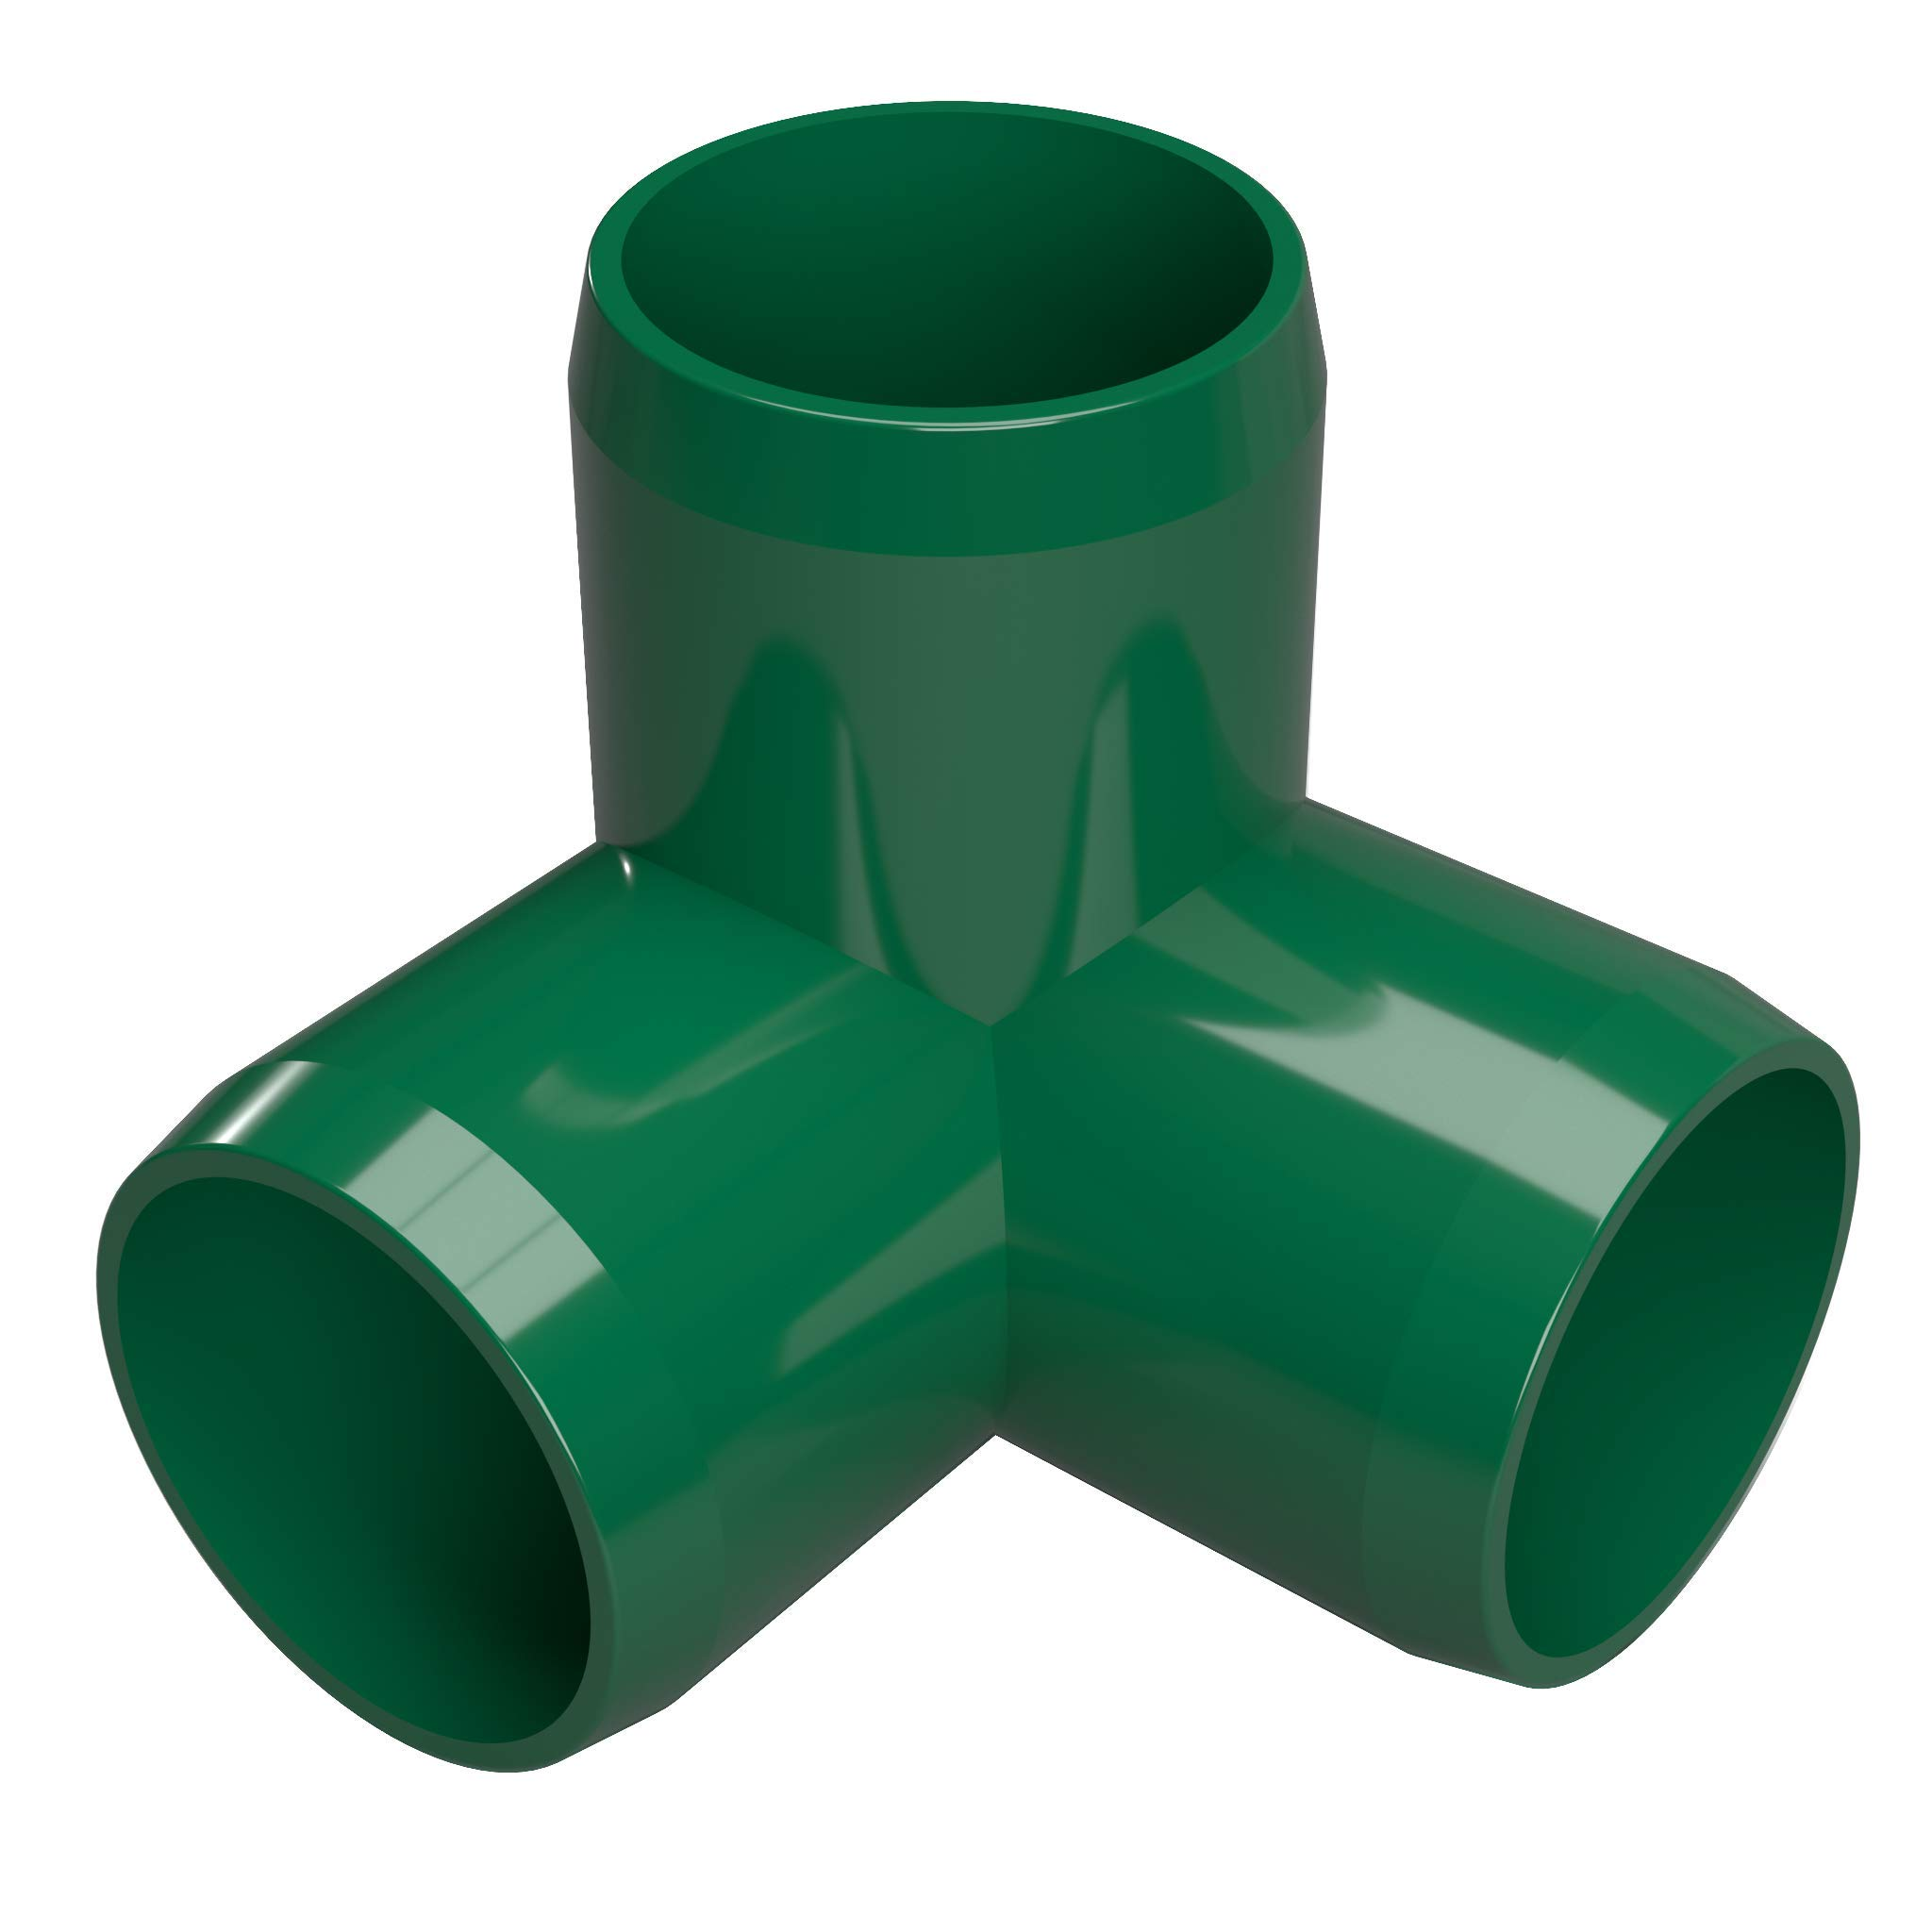 FORMUFIT F0343WE-GR-8 3-Way Elbow PVC Fitting, Furniture Grade, 3/4'' Size, Green (Pack of 8)